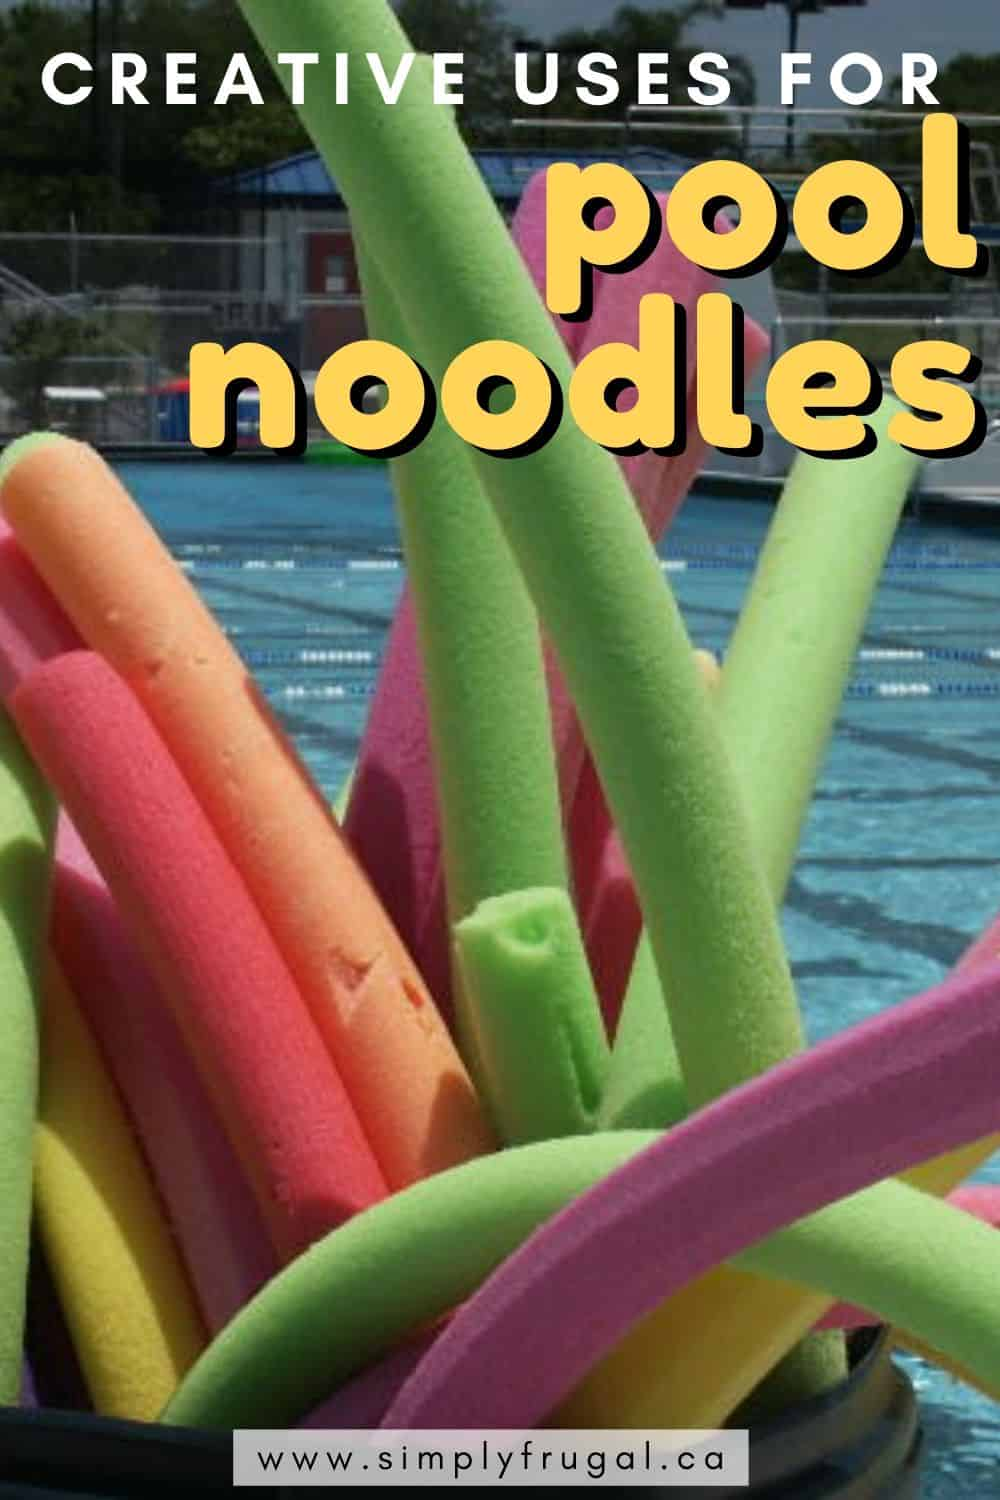 If you have a few extra pool noodles on hand, or just feel like getting creative, check out these 7 creative uses for pool noodles!